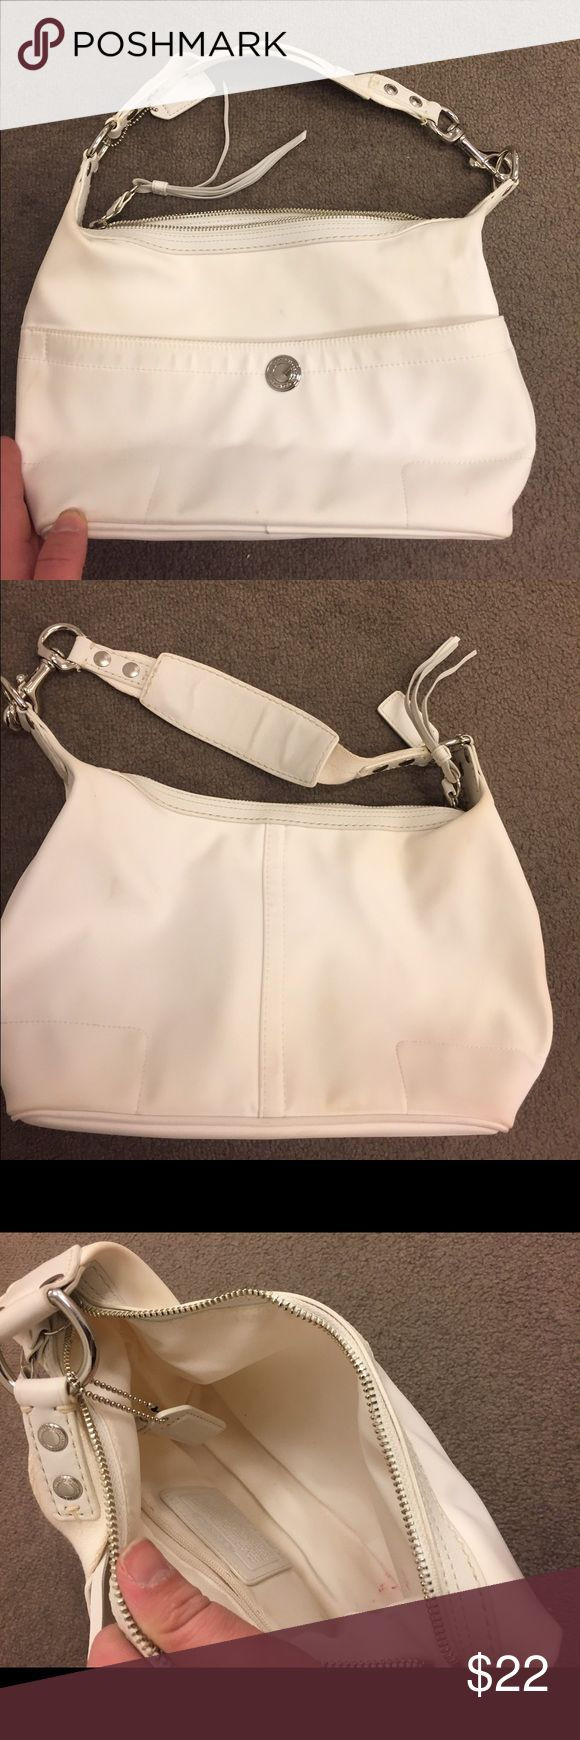 Coach Cream Shoulder Bag Cute and Classic shoulder bag in cream from Coach. It comes with the swing tag, and has a zipper top. There are no major flaws or damage, but there are some staining, marks, and dirty spots as pictured. #coach #cream #purse Coach Bags Shoulder Bags